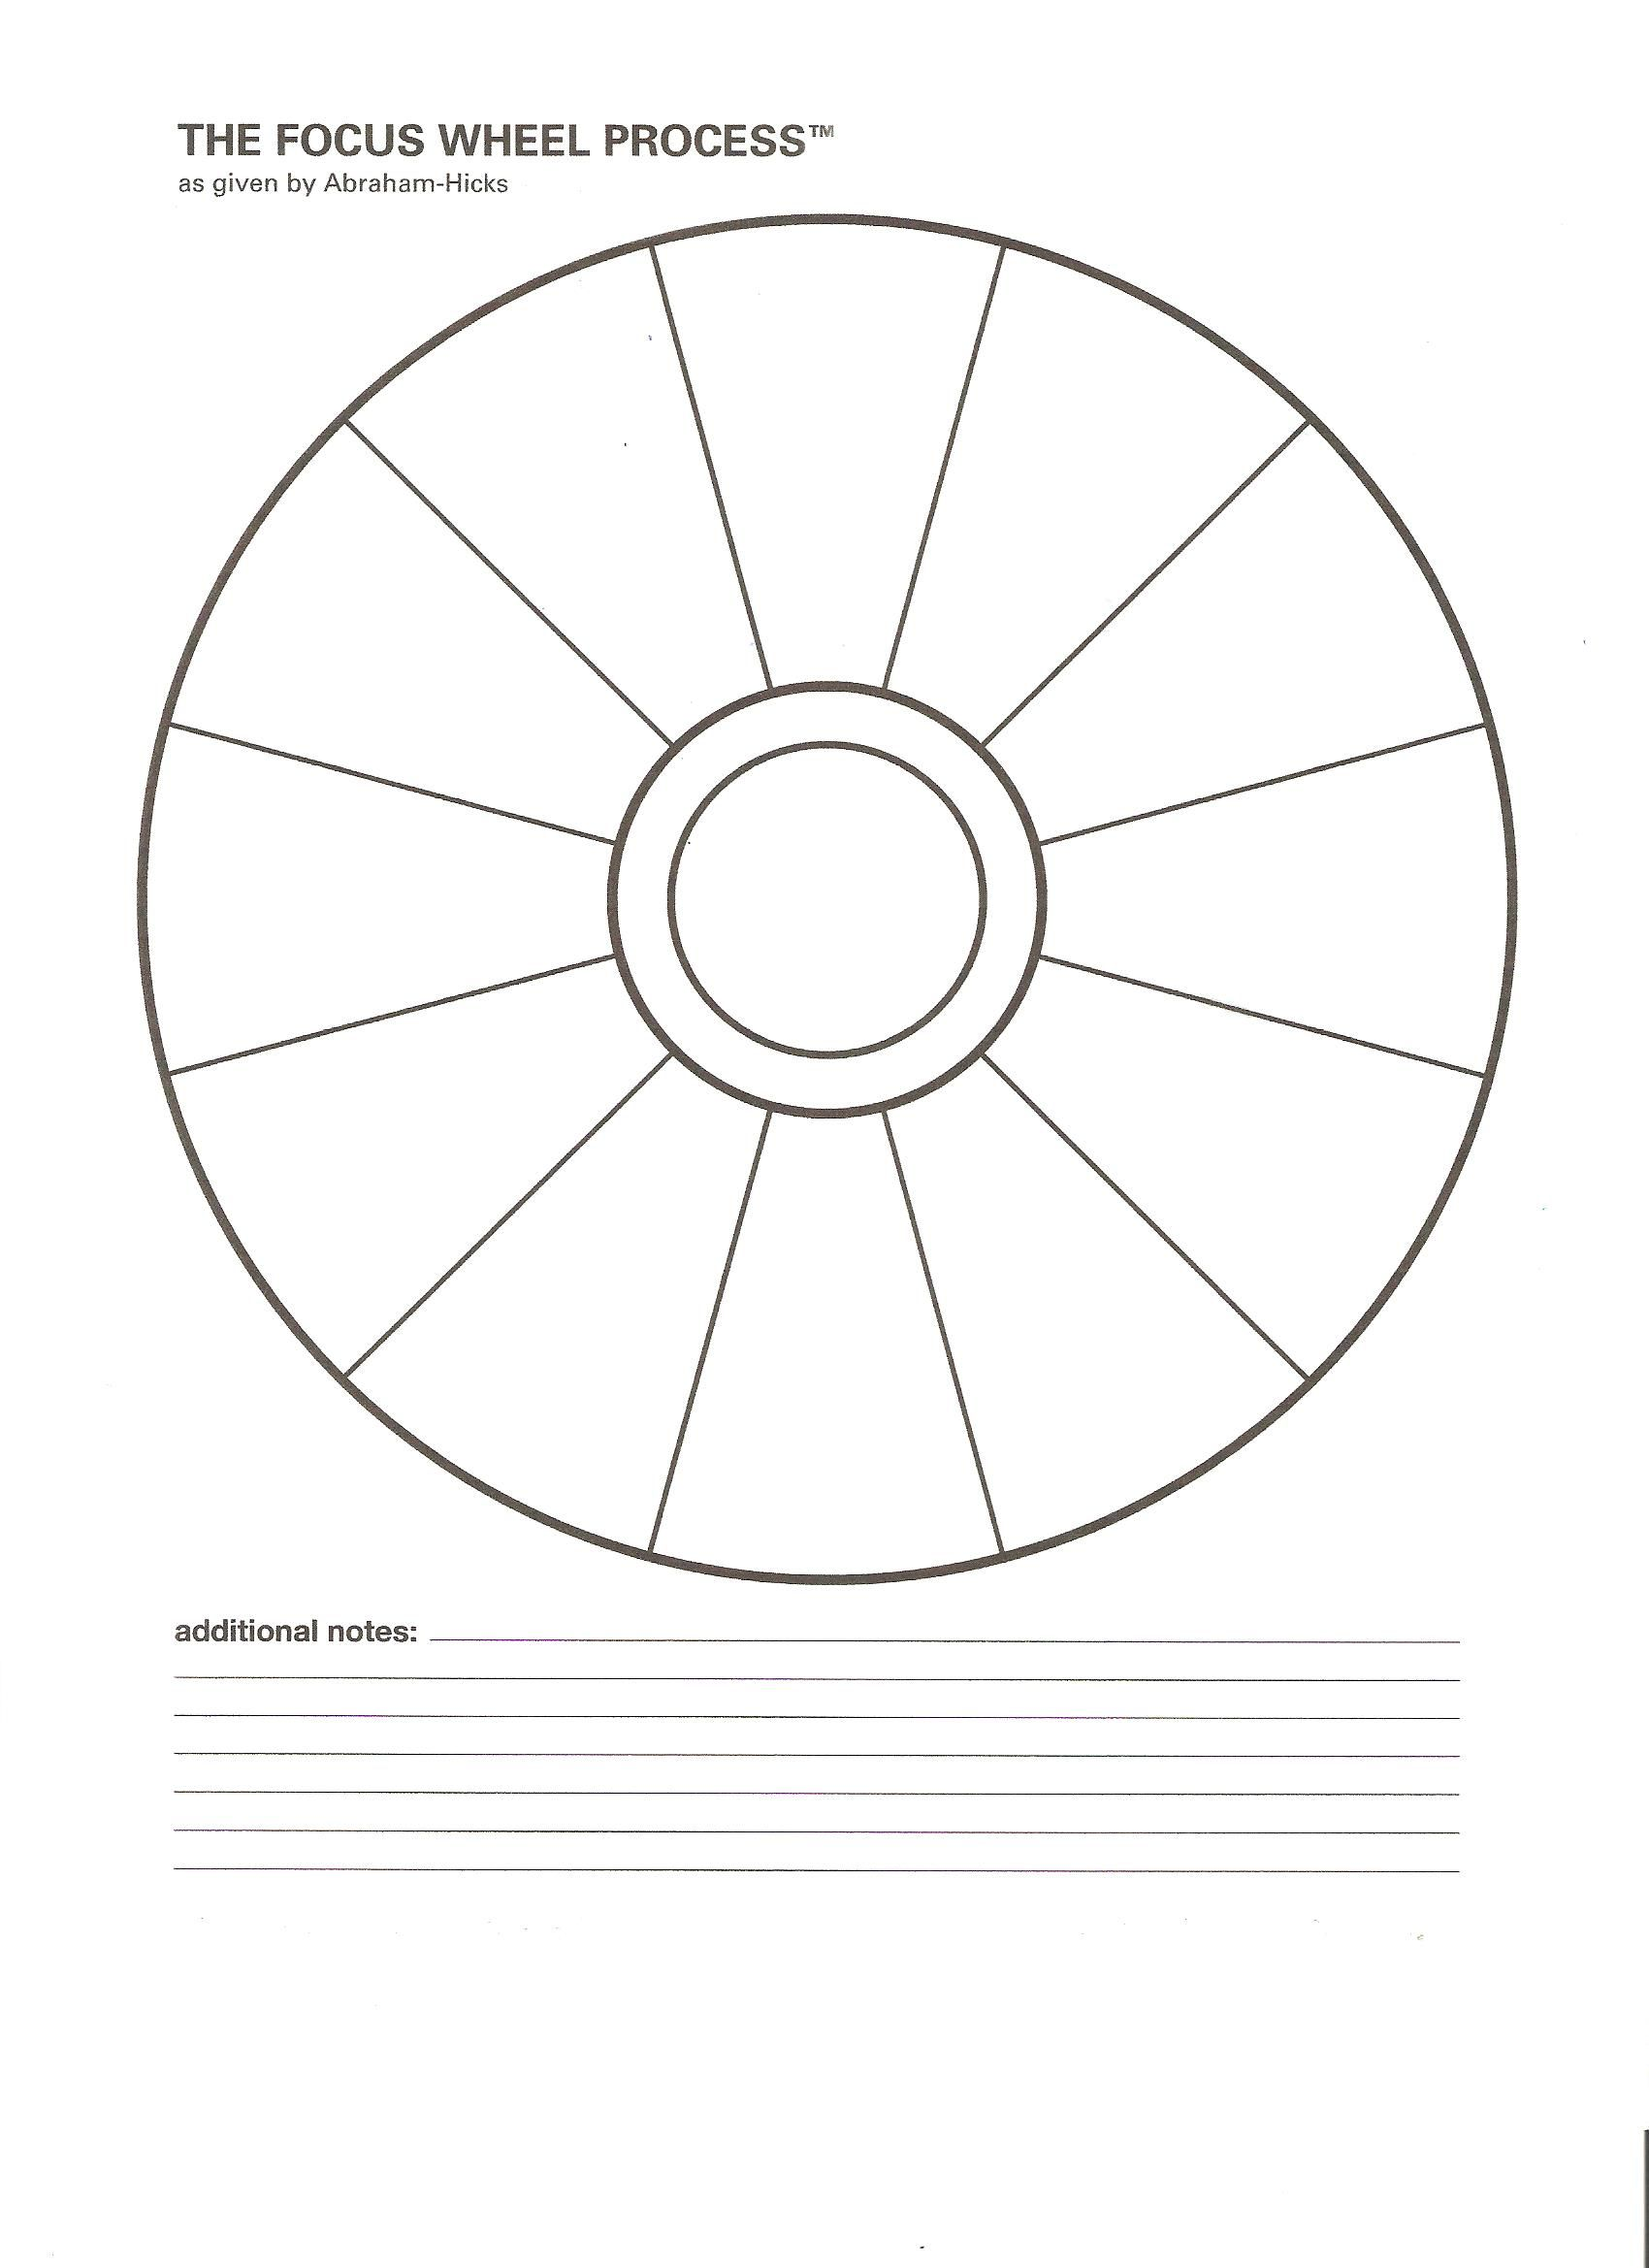 Click Image Above To Find Out How To Make A Focus Wheel